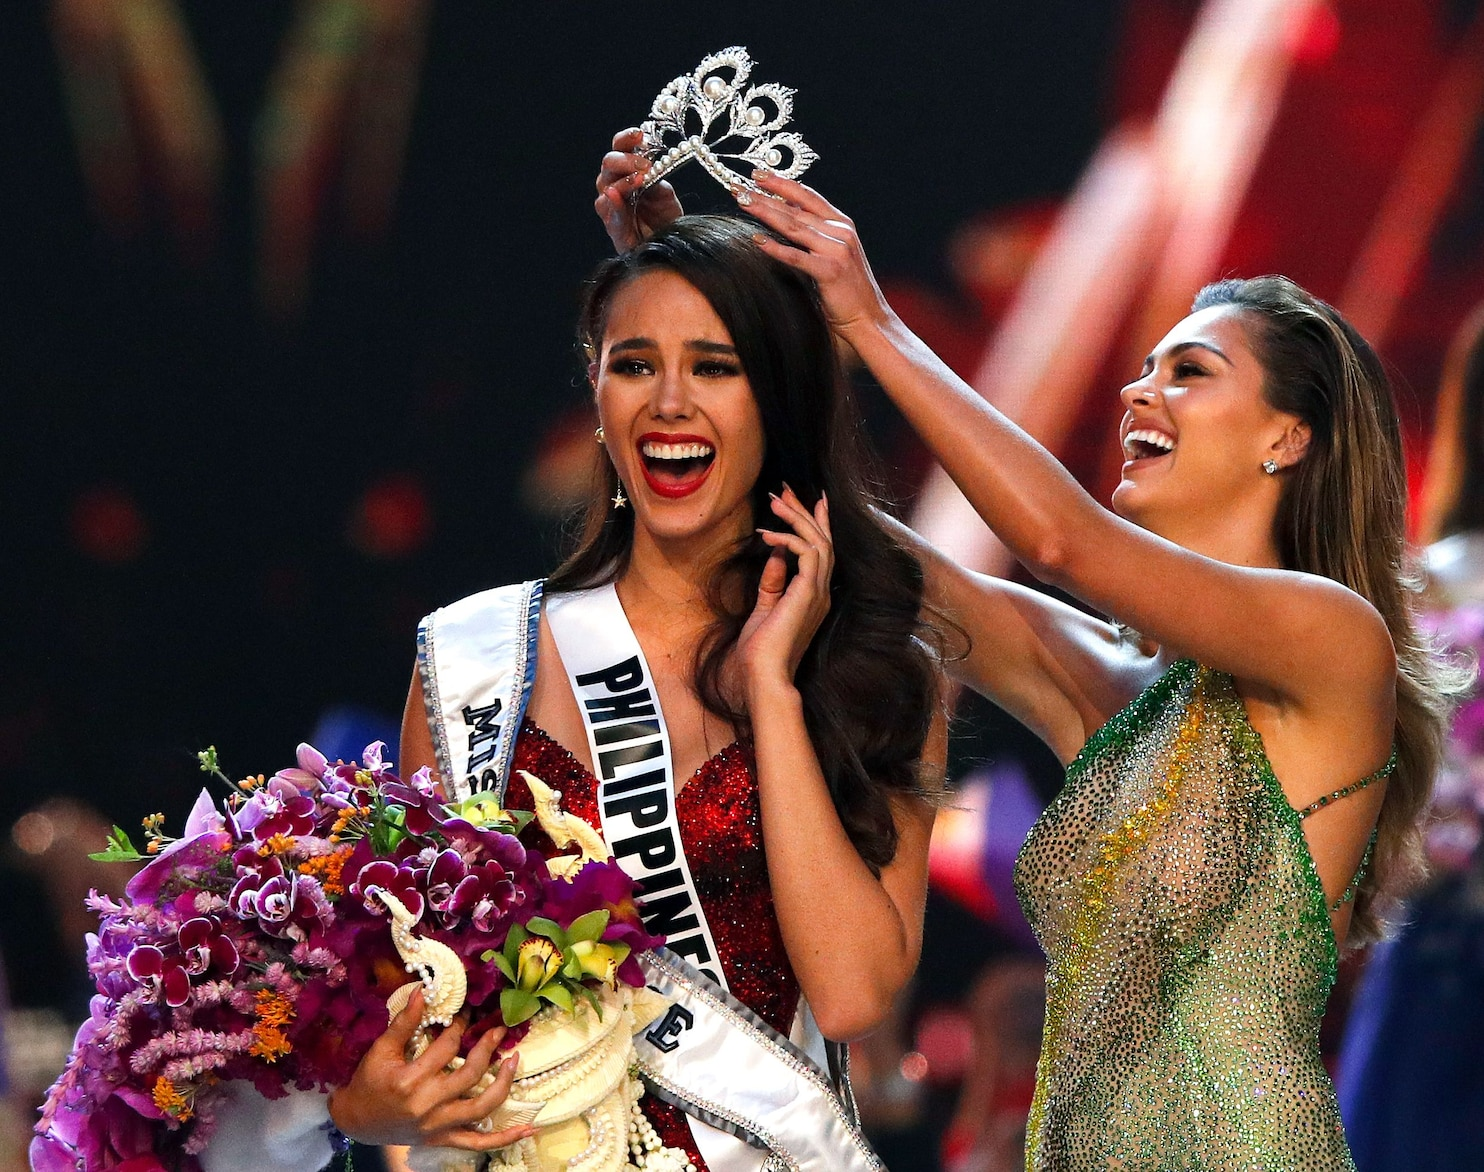 The scene during the 2018 Miss Universe pageant The